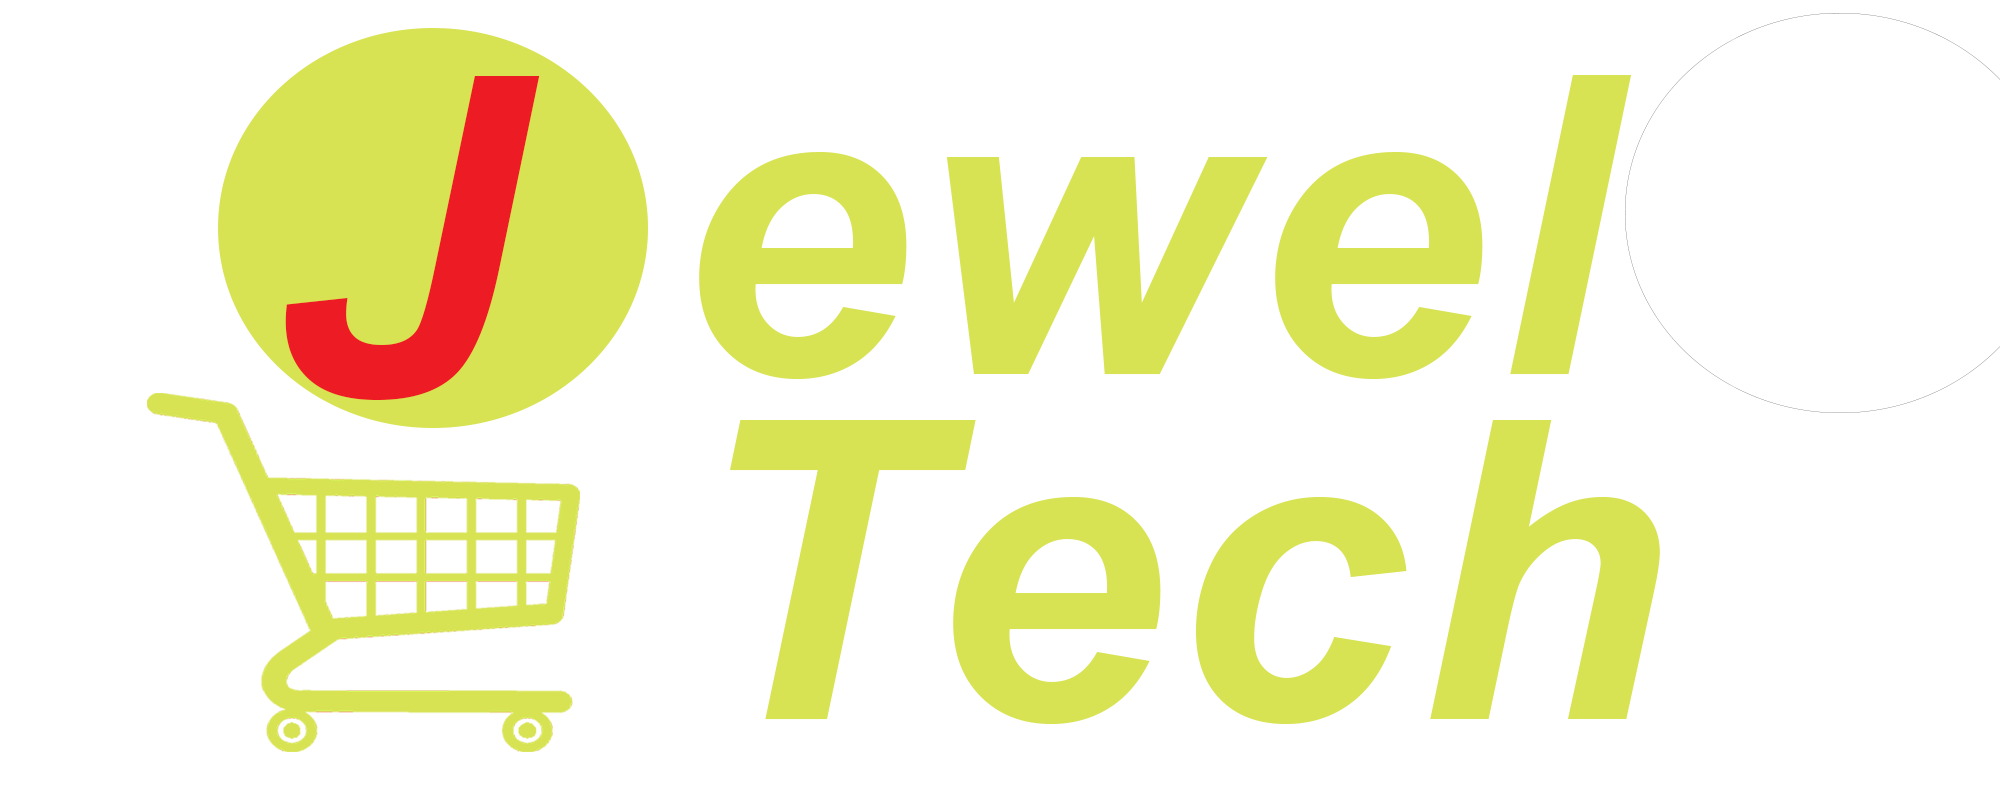 Jewel-tech